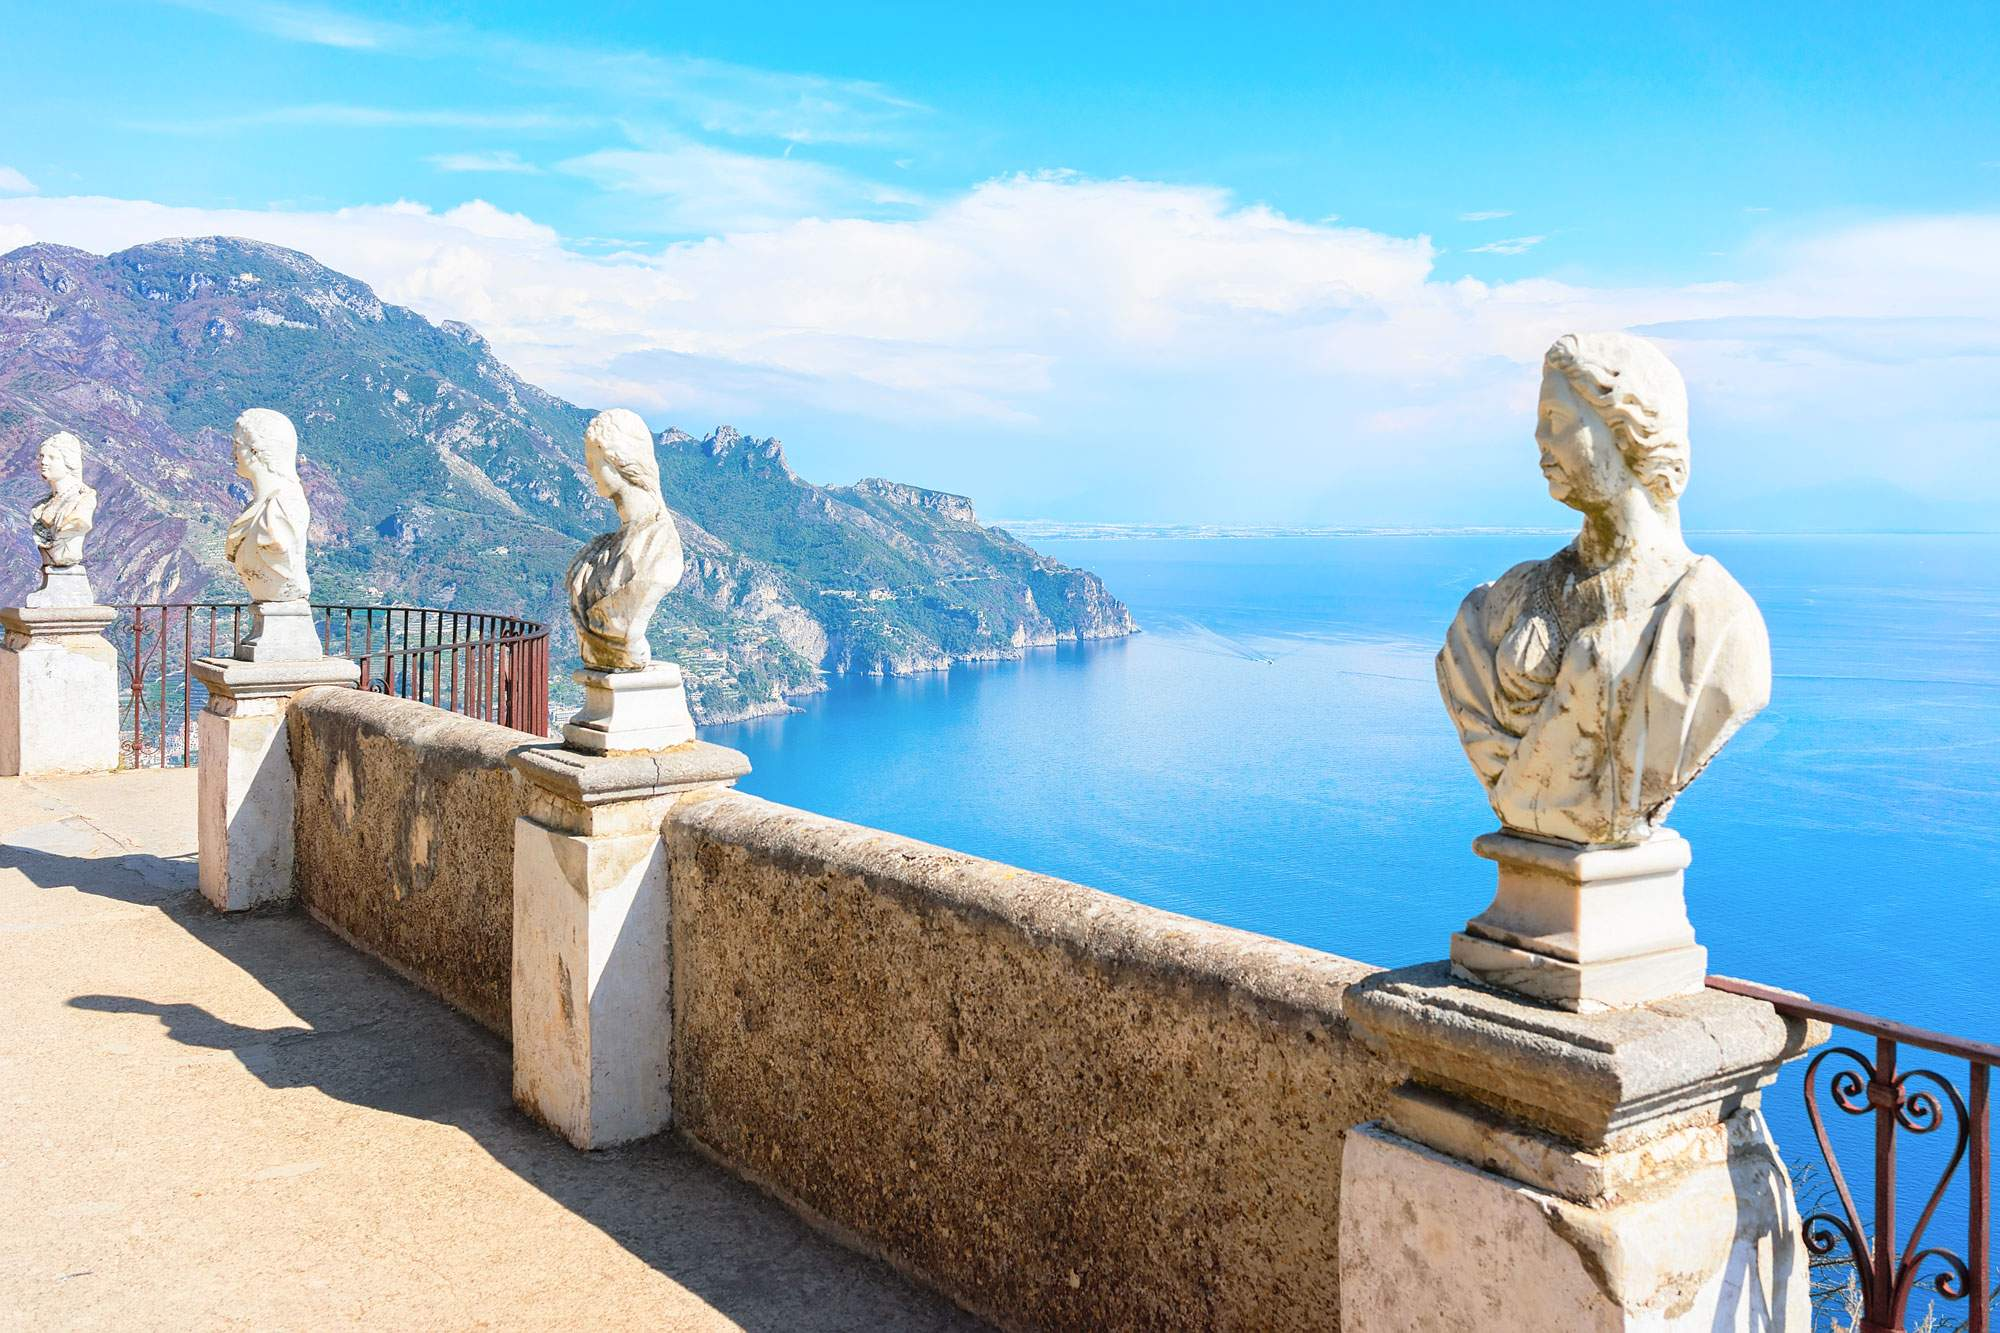 ravello-amalfi-italy-festival-sculpture-views